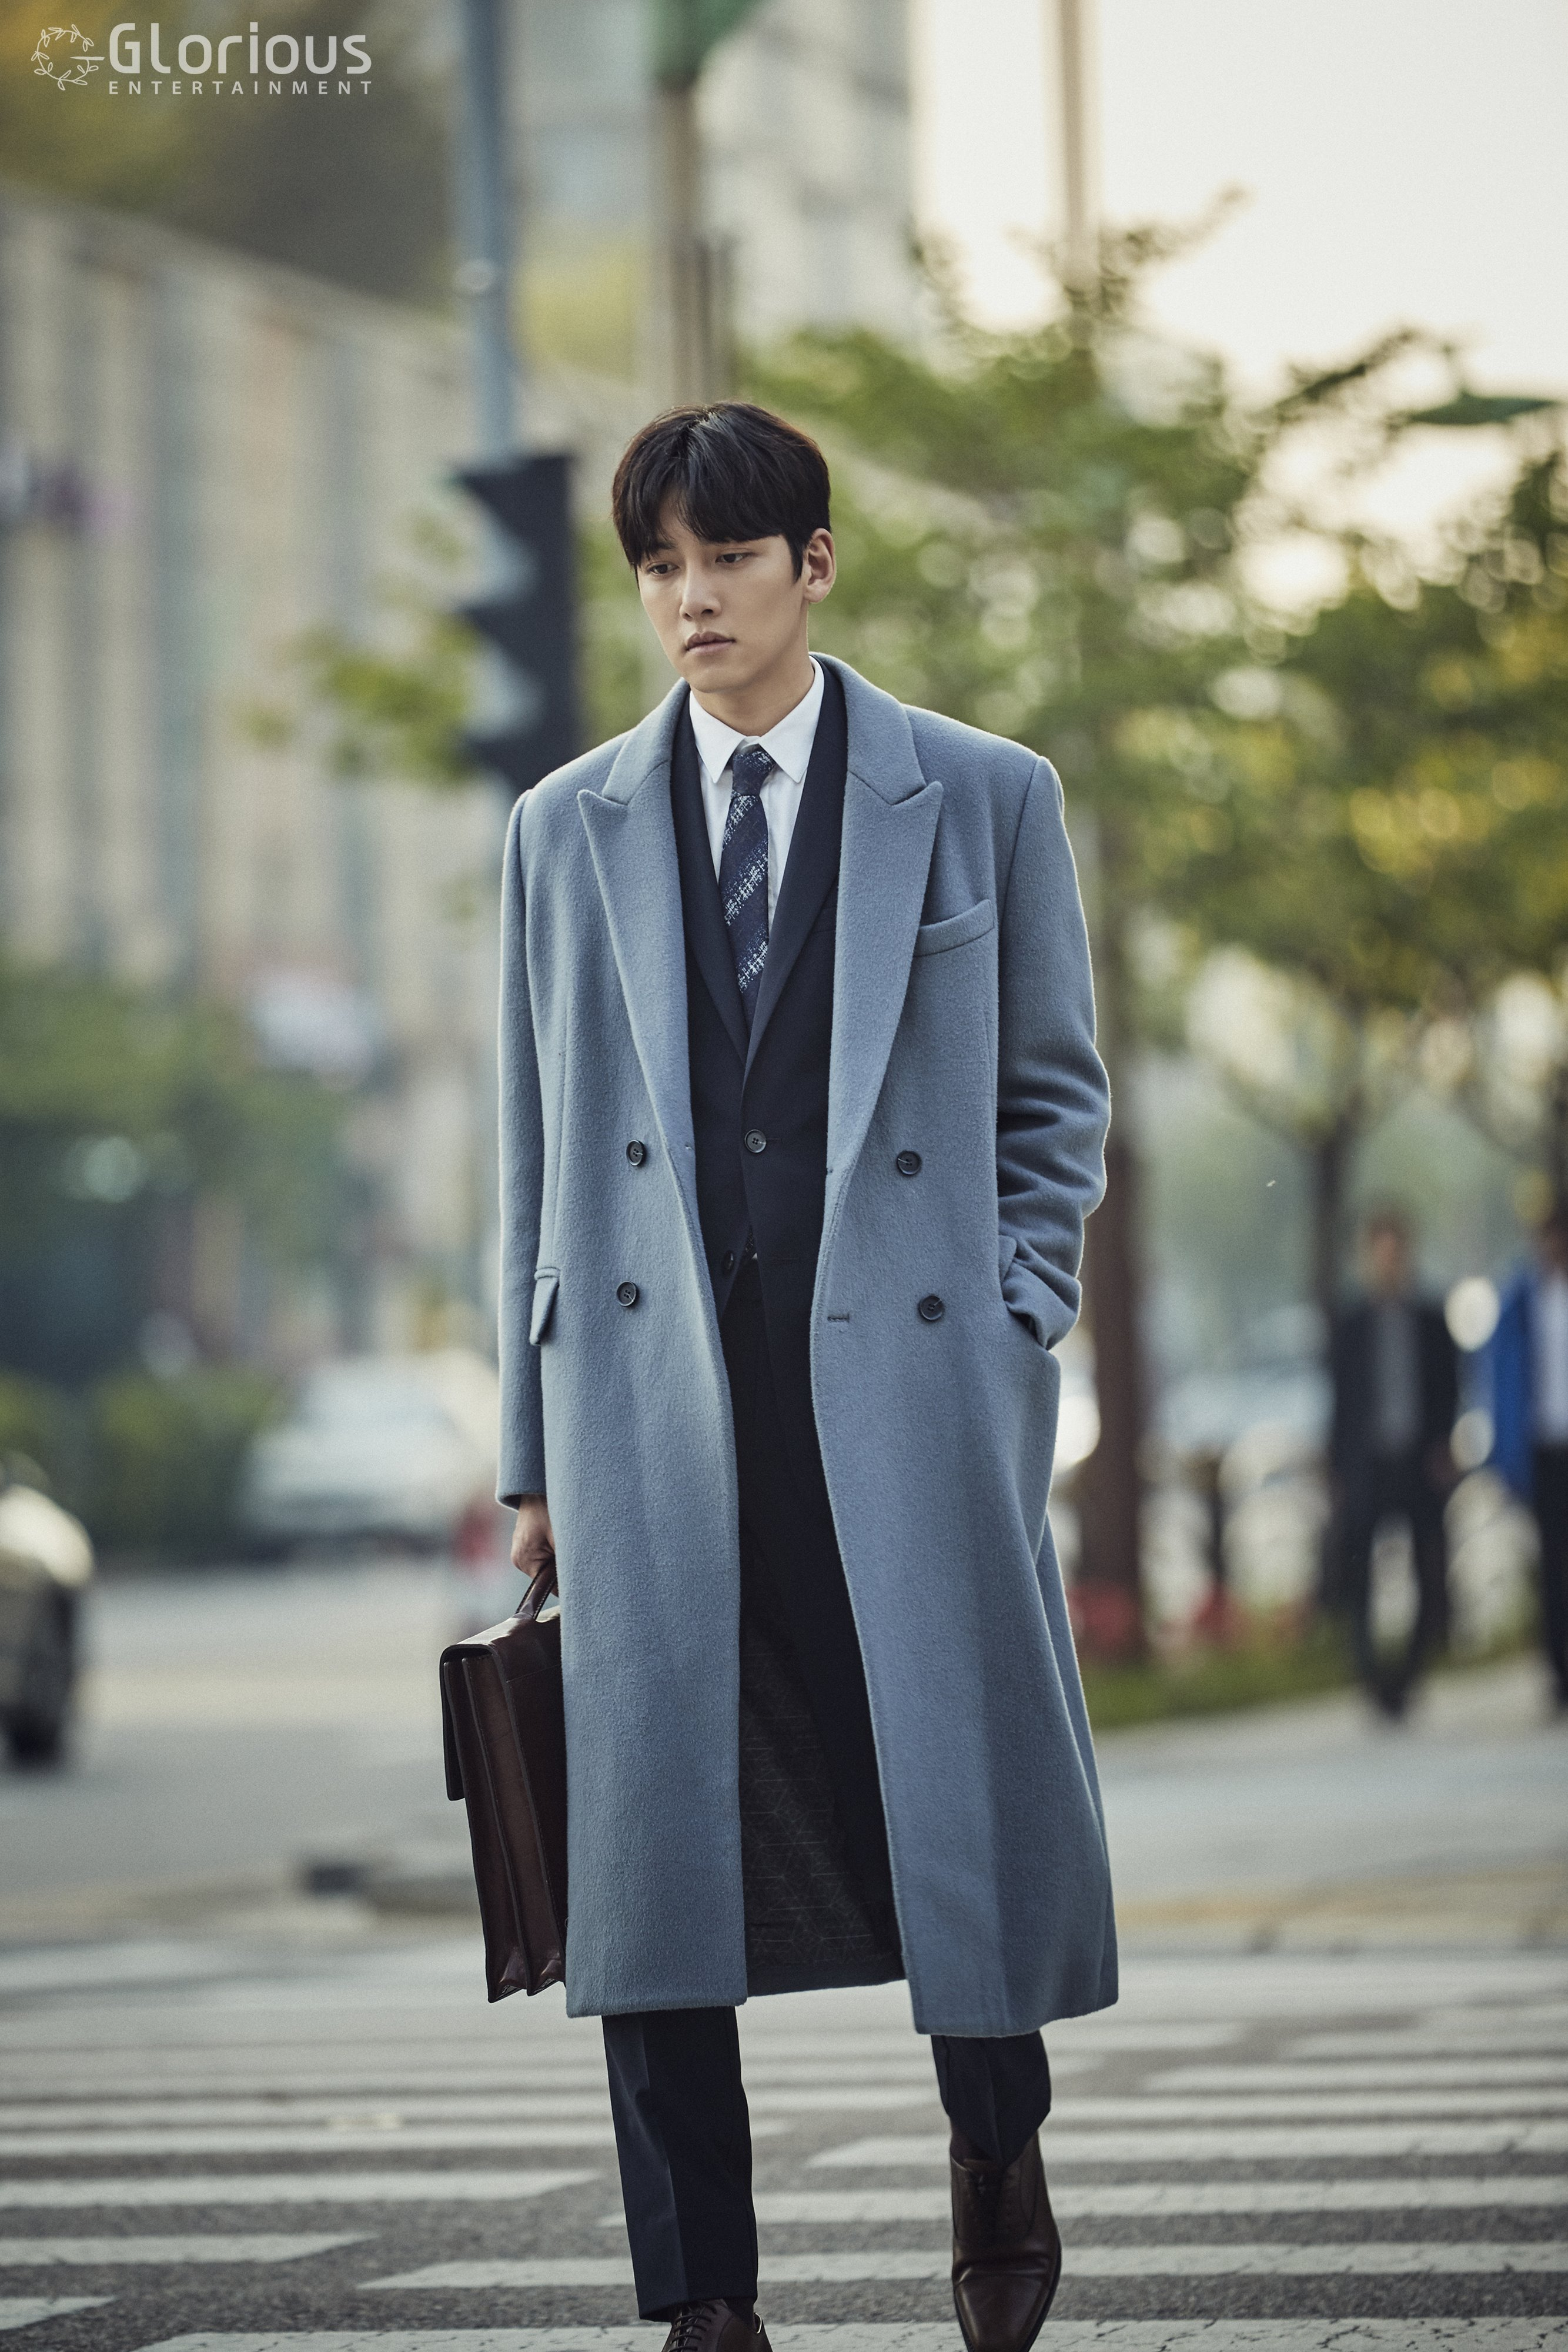 Drama More Heart Stopping Stills Of Ji Chang Wook In